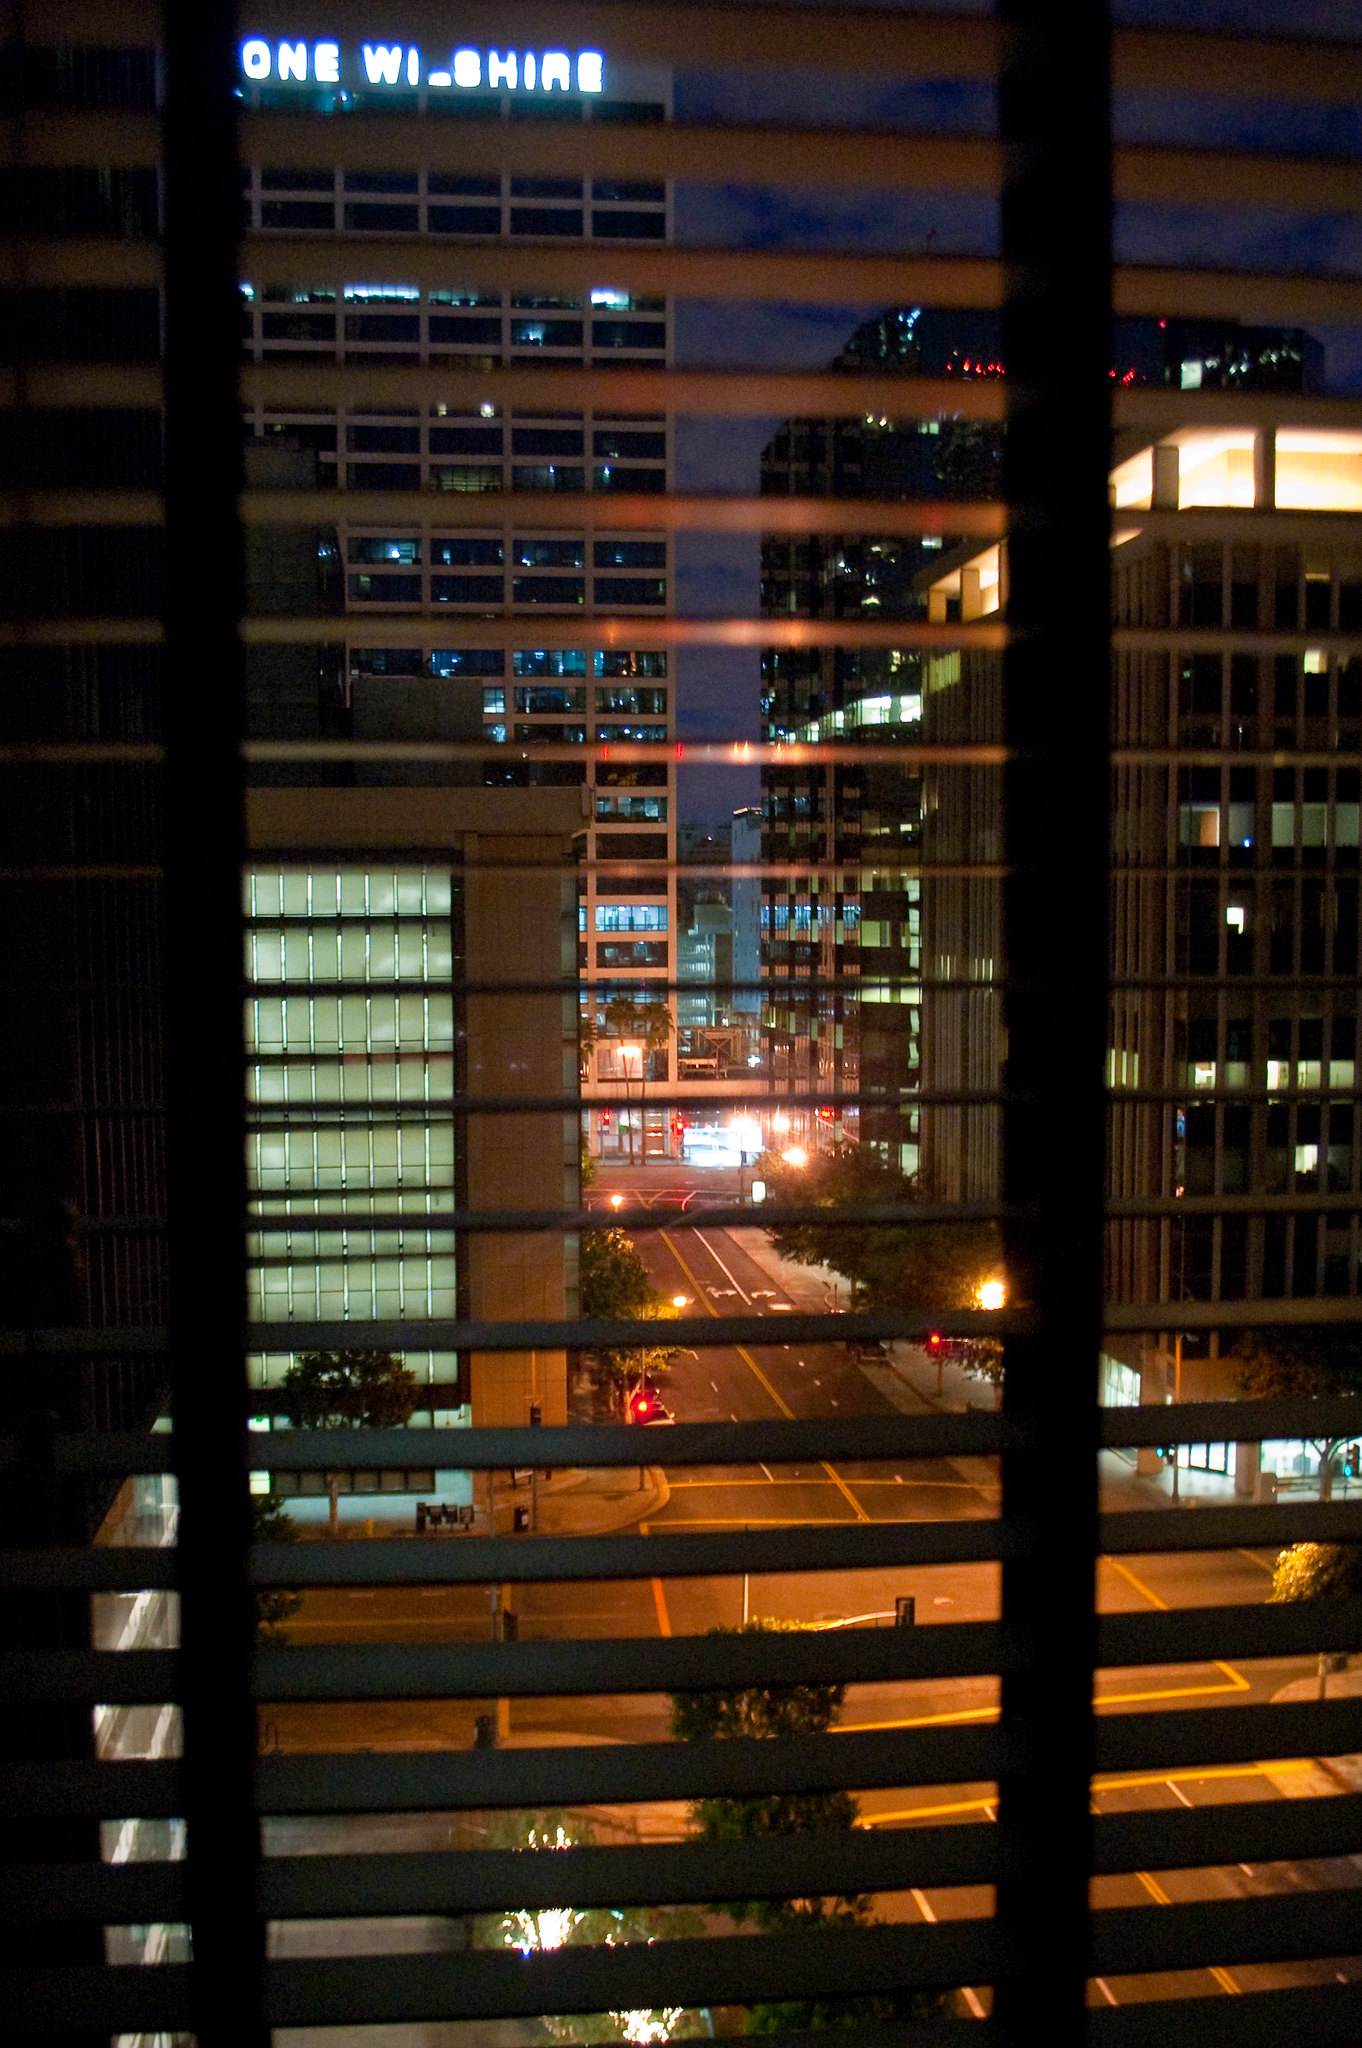 Office Window View Night : Thomas haire flickr